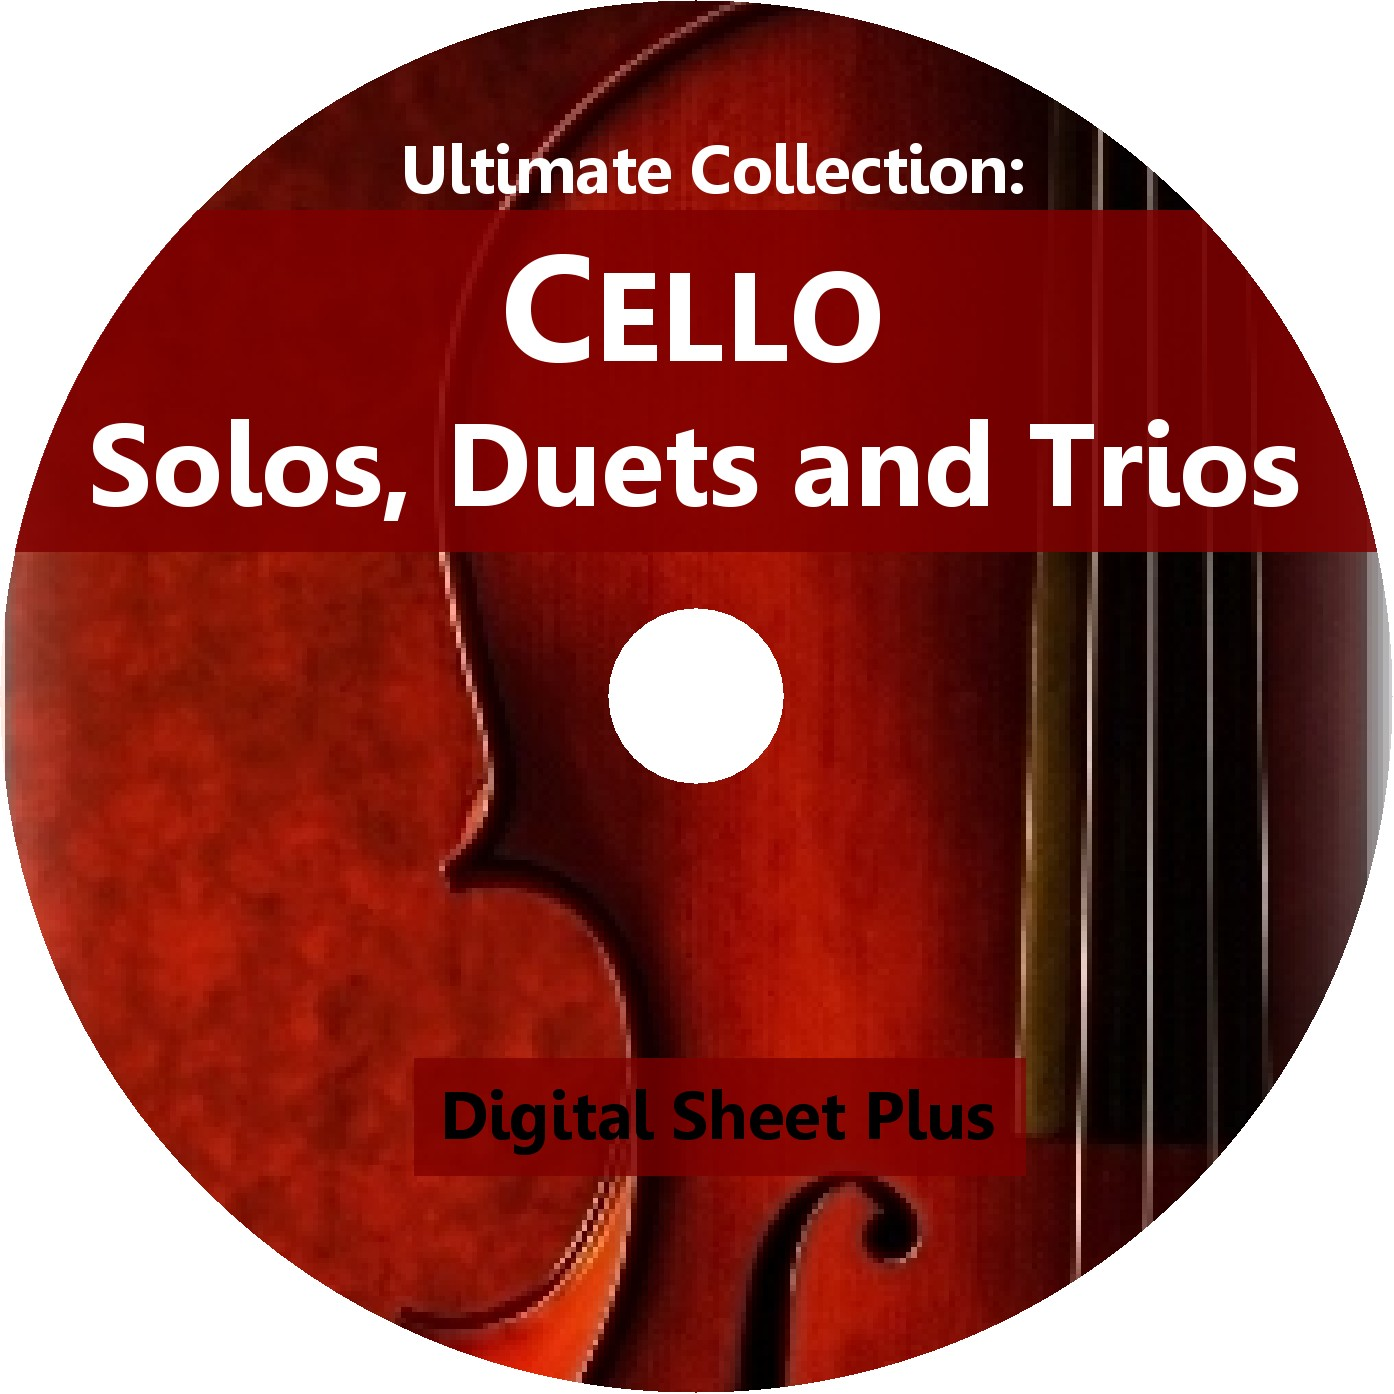 cello_solos_duet_trios_cd_cover_non.jpg